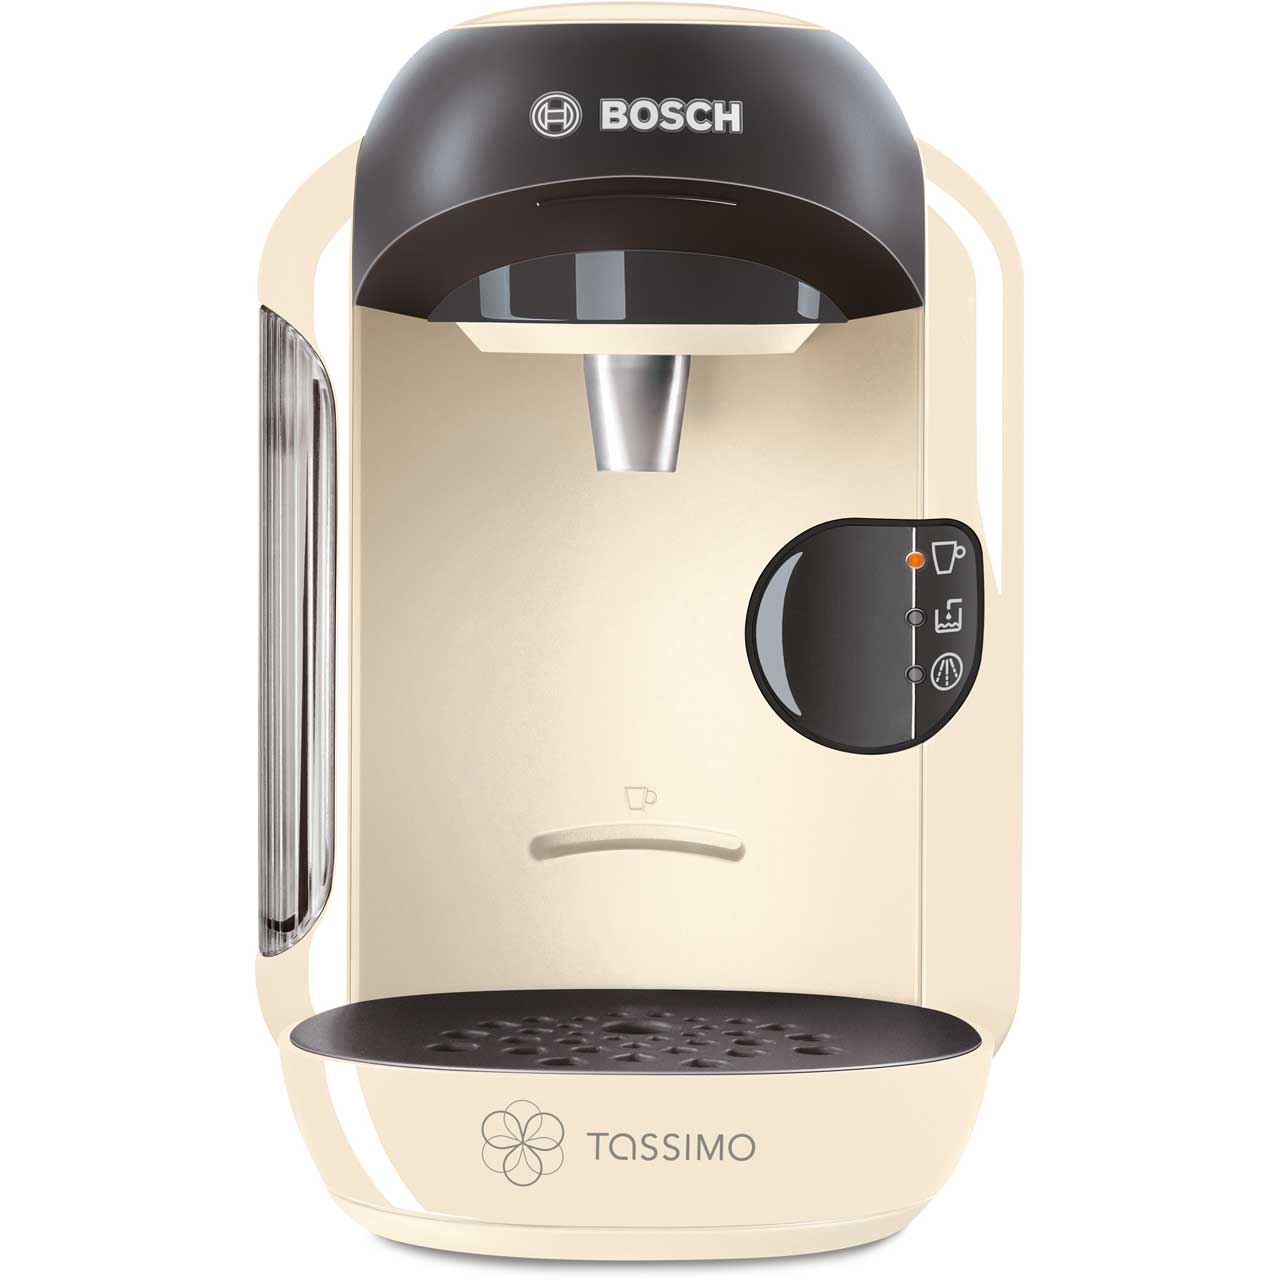 Electronic Pods For Tassimo Coffee Machine bosch tassimo vivy ii tas1257gb pod coffee machine cream